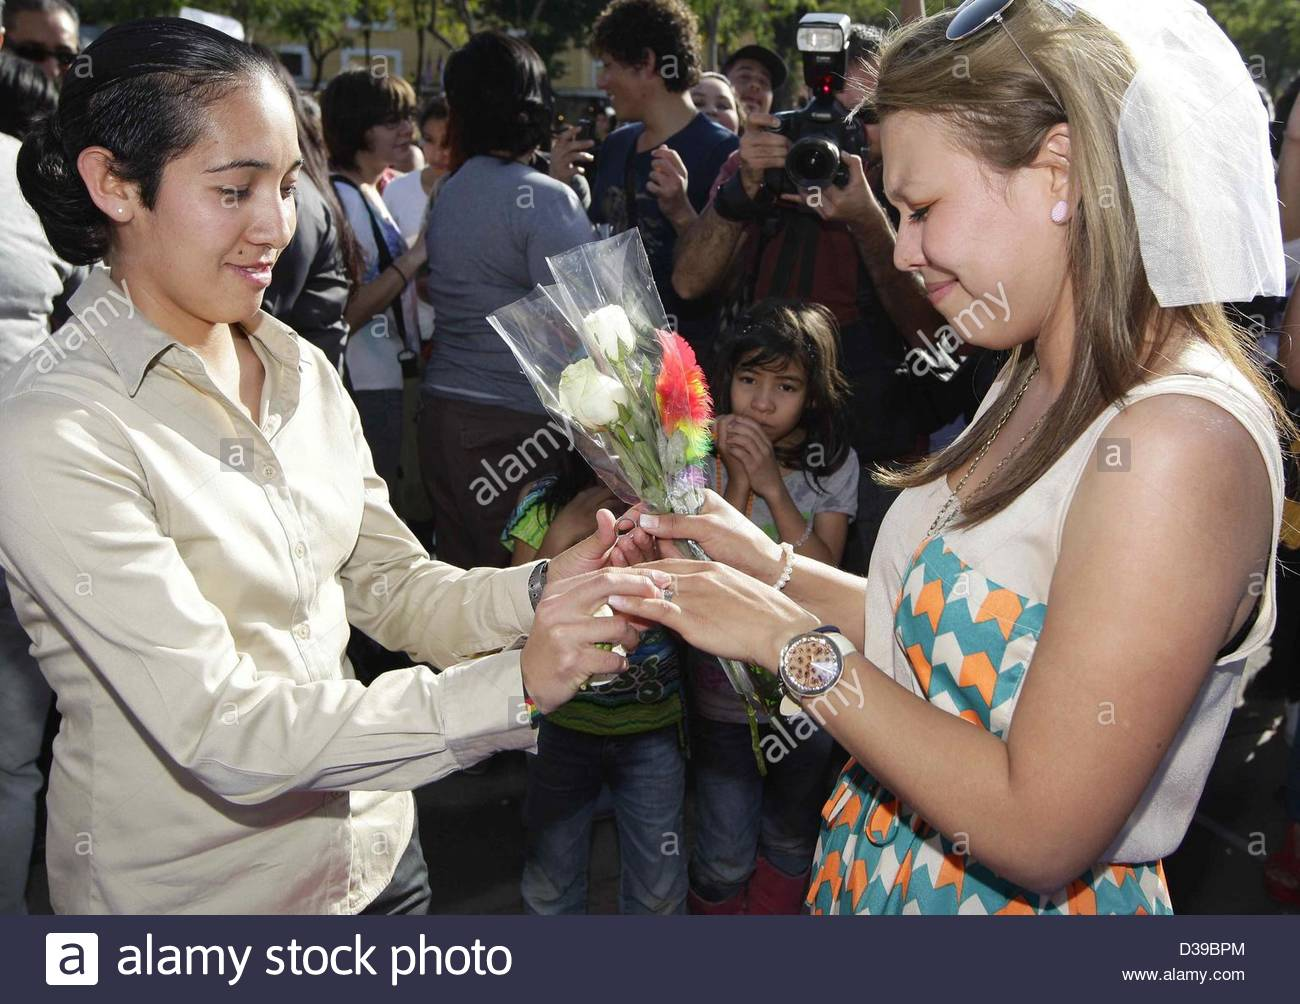 Image result for Mexico lesbian